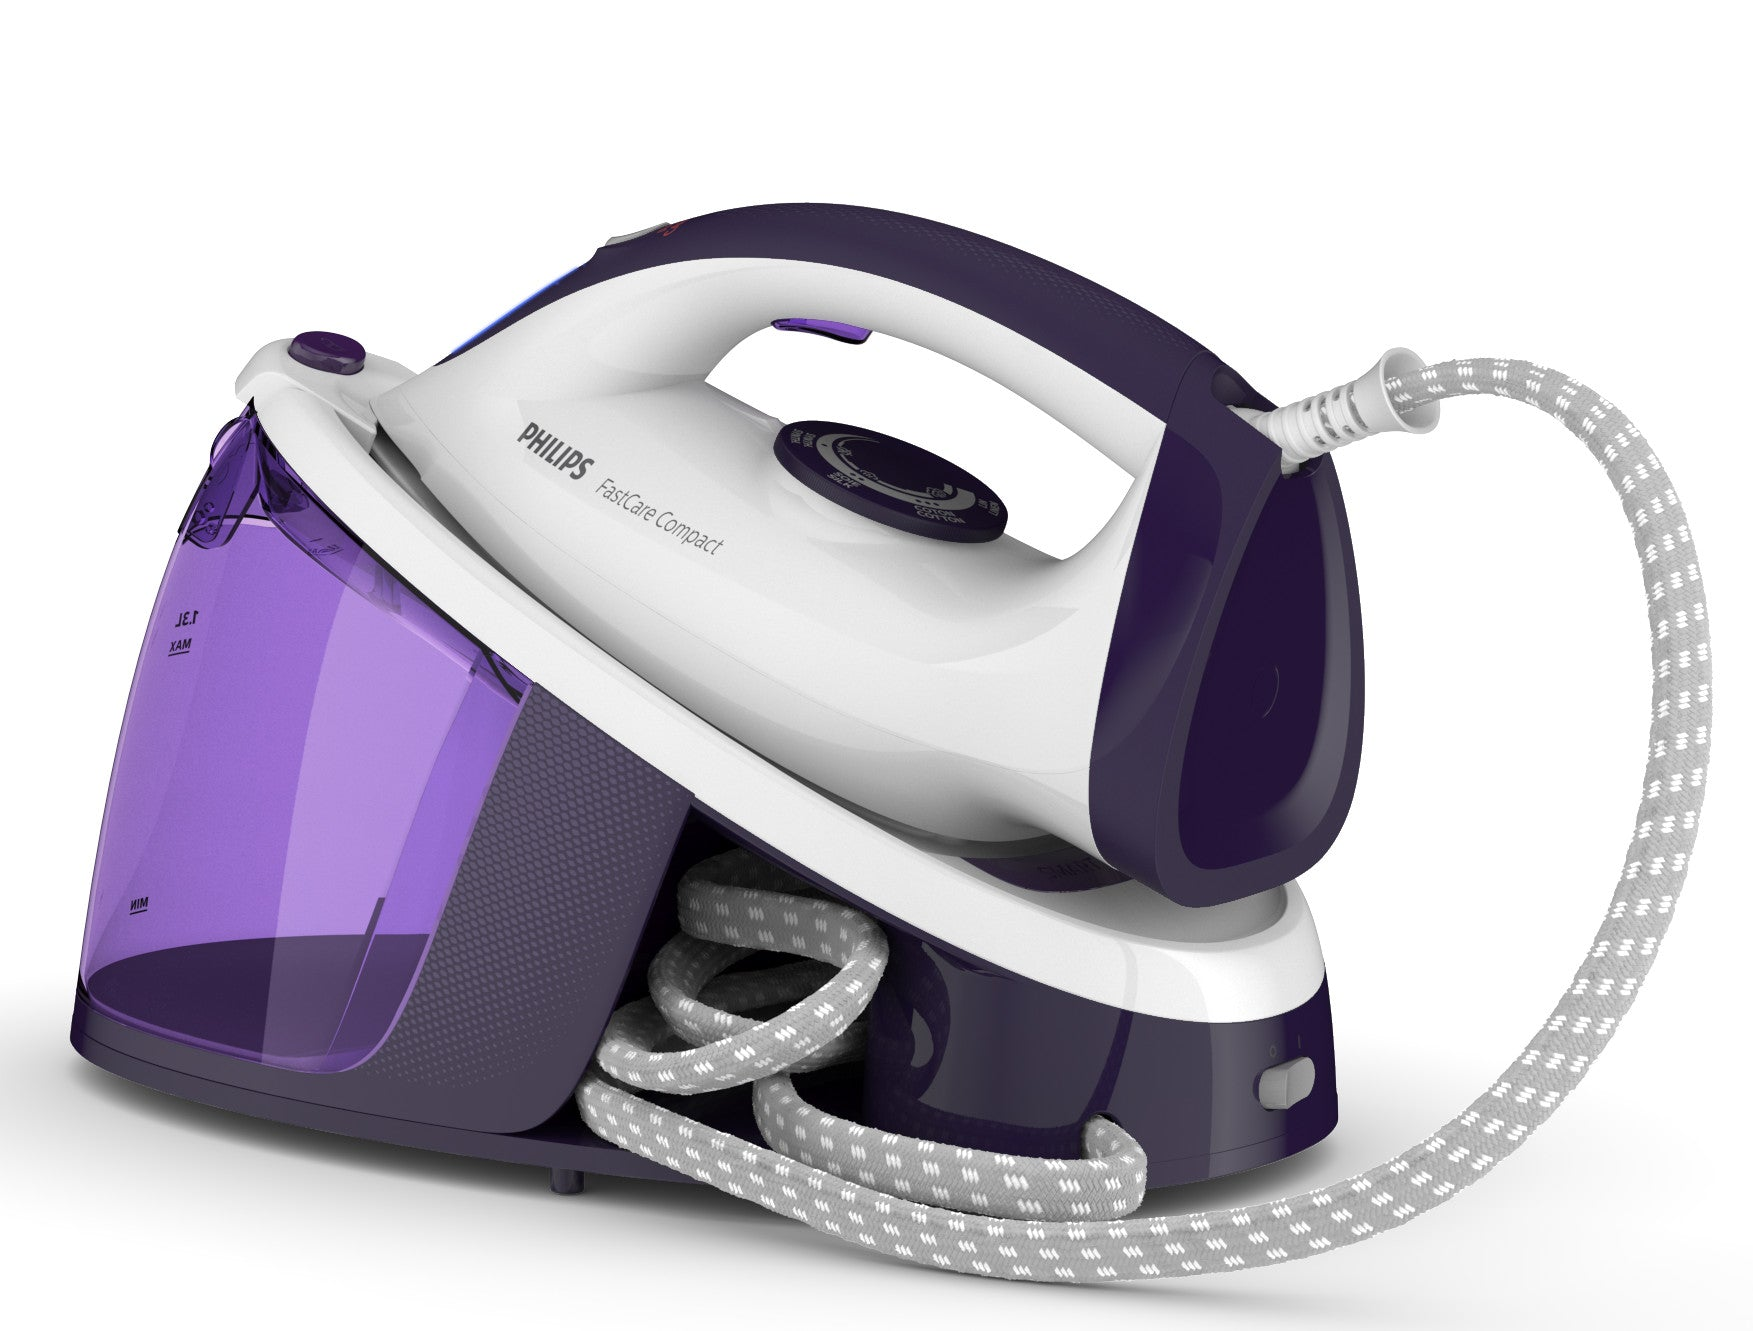 Compact Steam Generator Iron FastCare | Philips